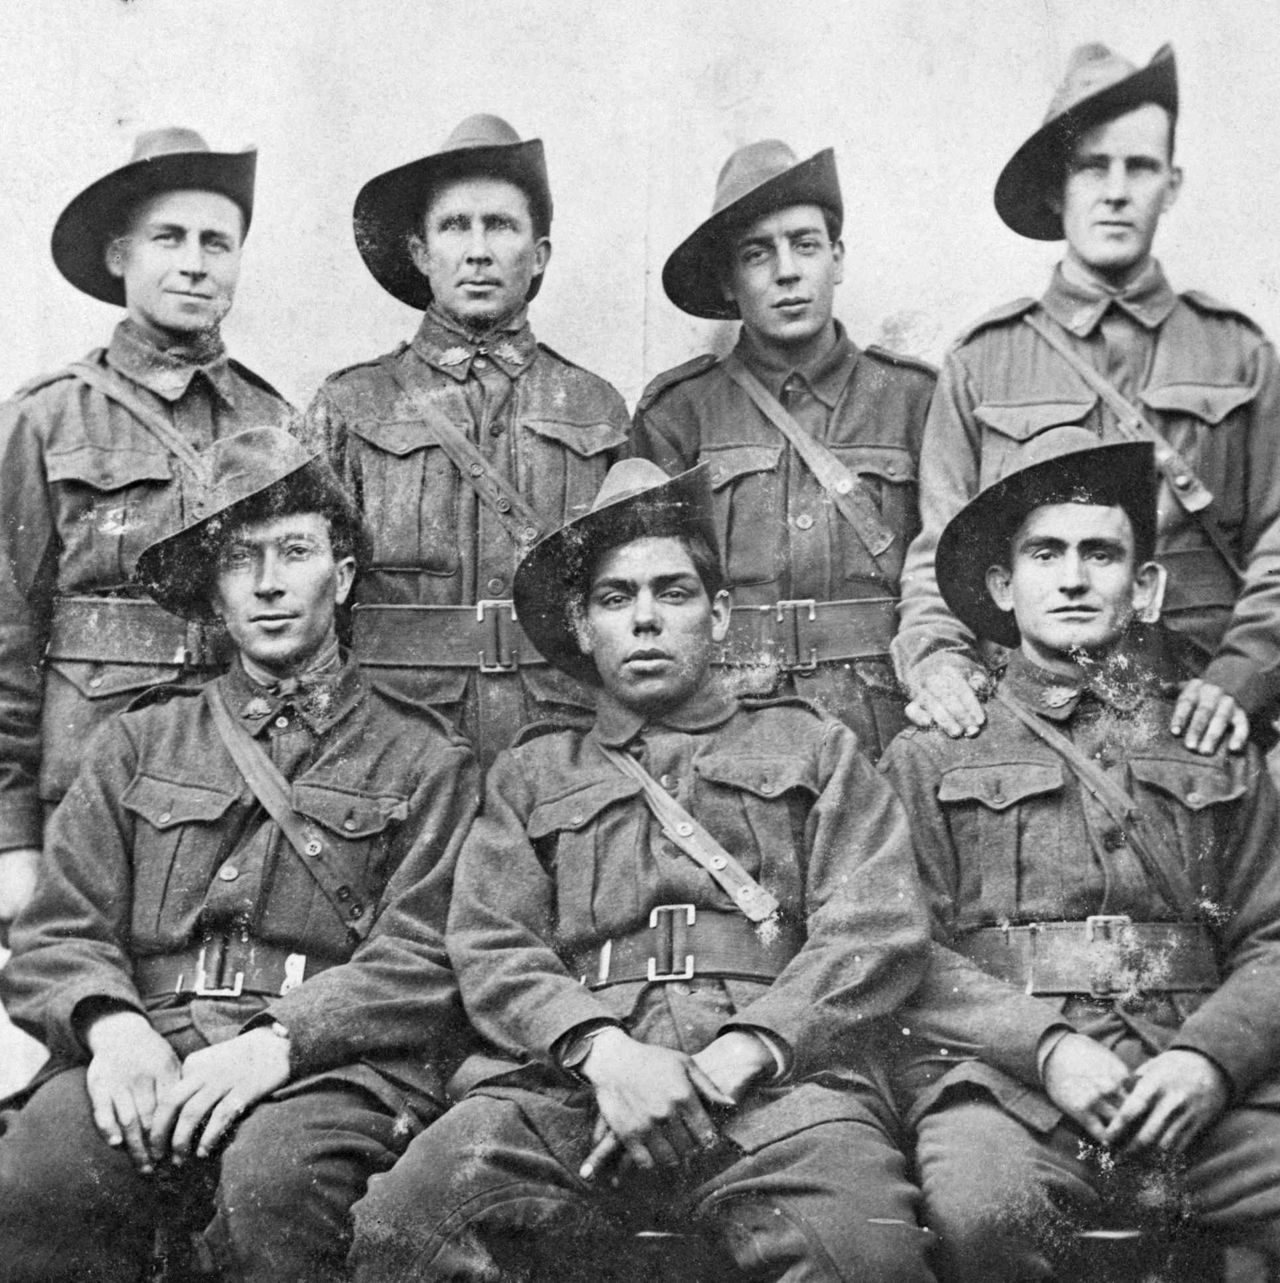 What was Australia's contribution to world war one?